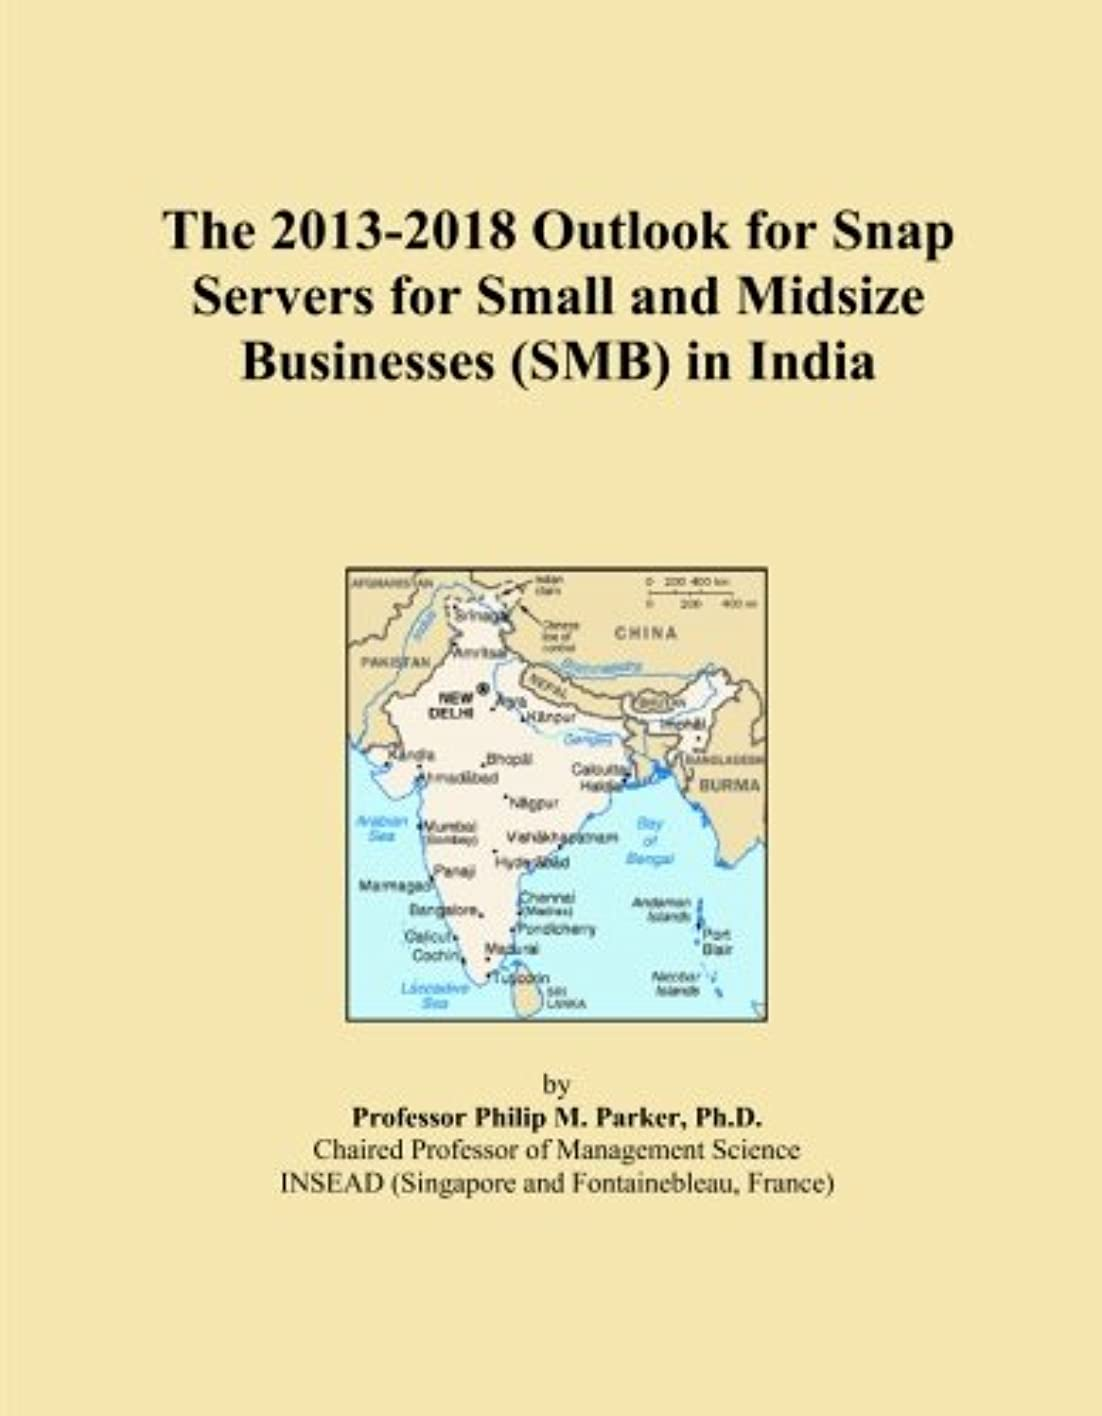 算術明るくするフェードアウトThe 2013-2018 Outlook for Snap Servers for Small and Midsize Businesses (SMB) in India